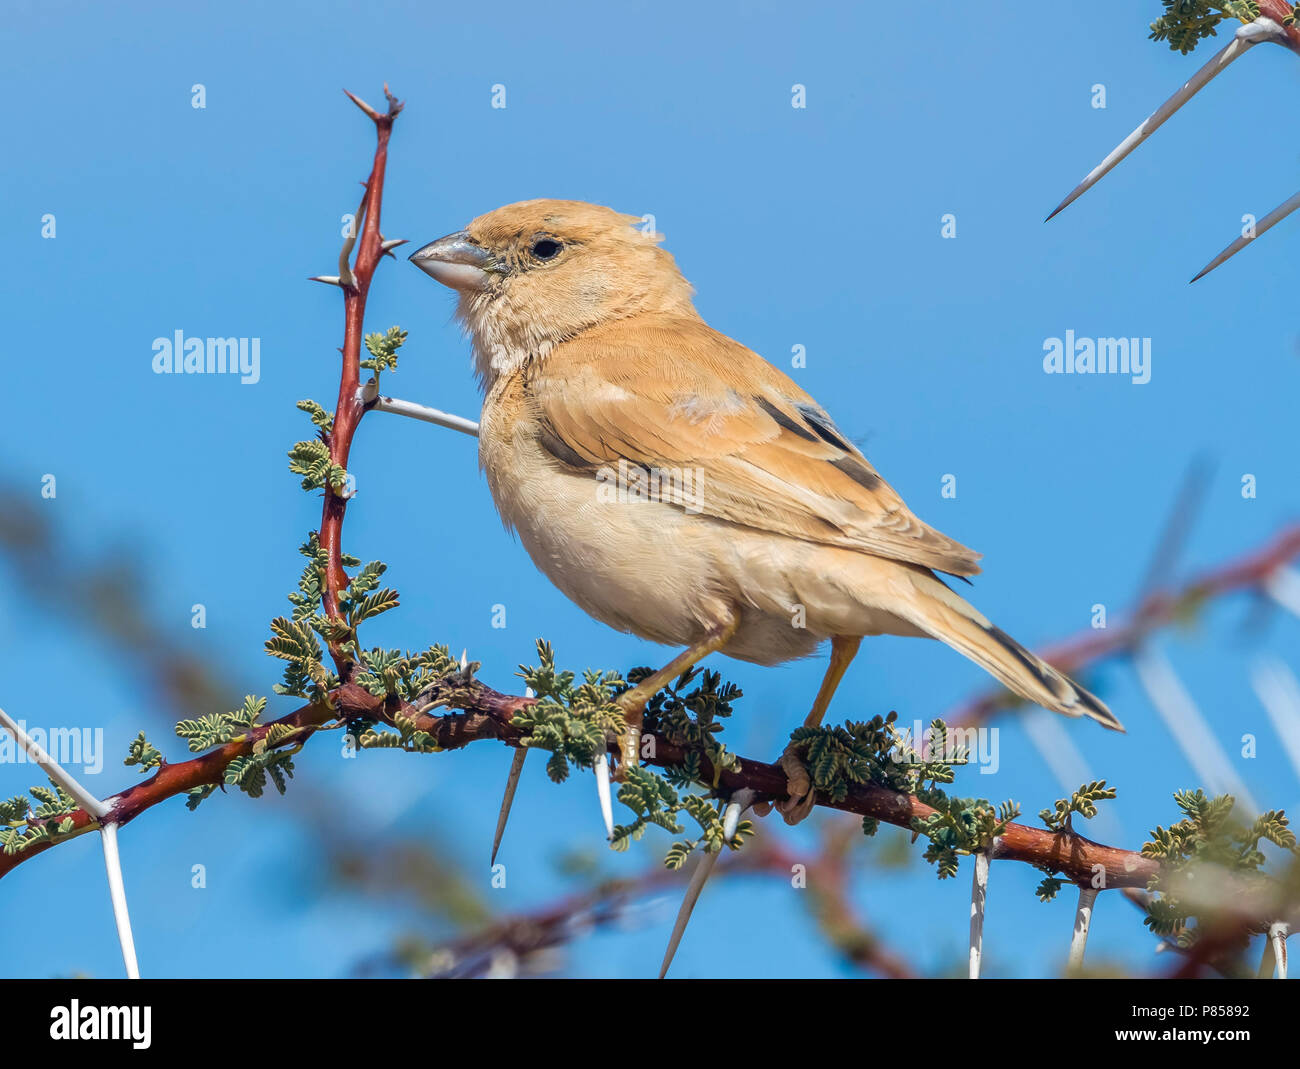 Adult female Northern Desert Sparrow perched on a acacia in Oued Jenna, Western Sahara. March 2011. - Stock Image